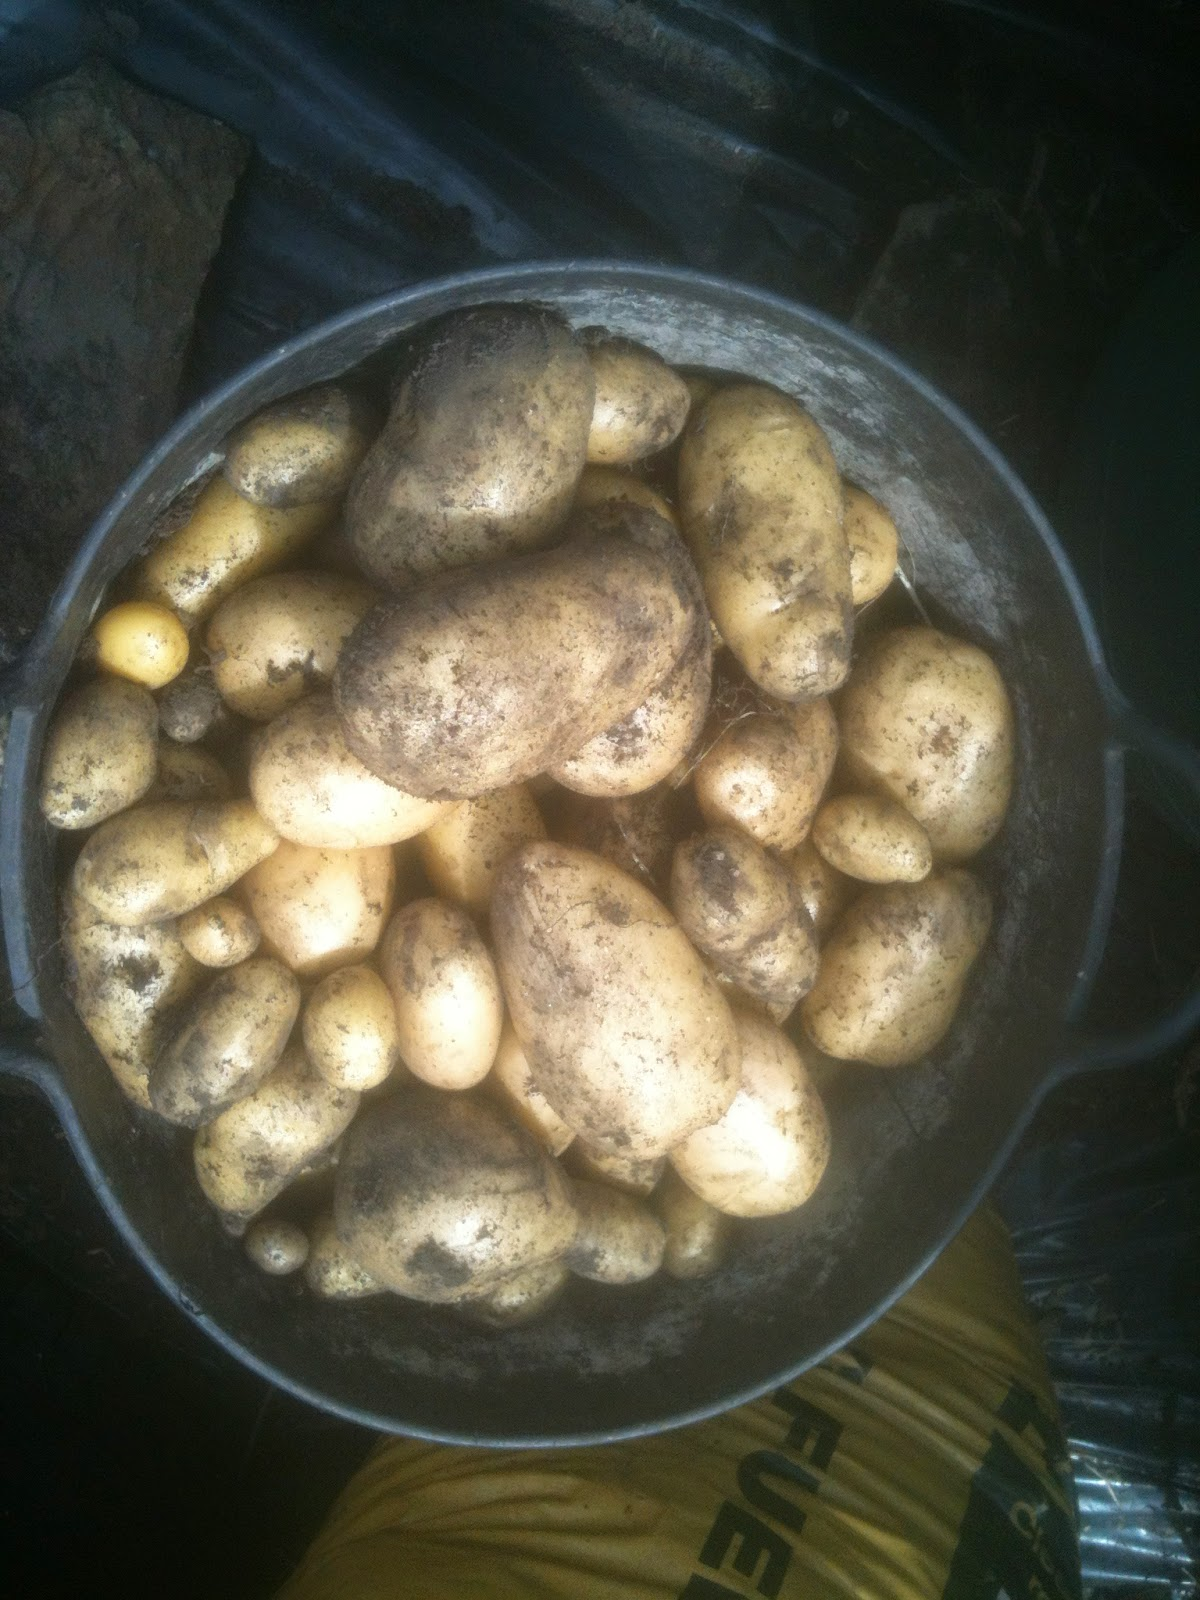 High yields of potatoes on containers.